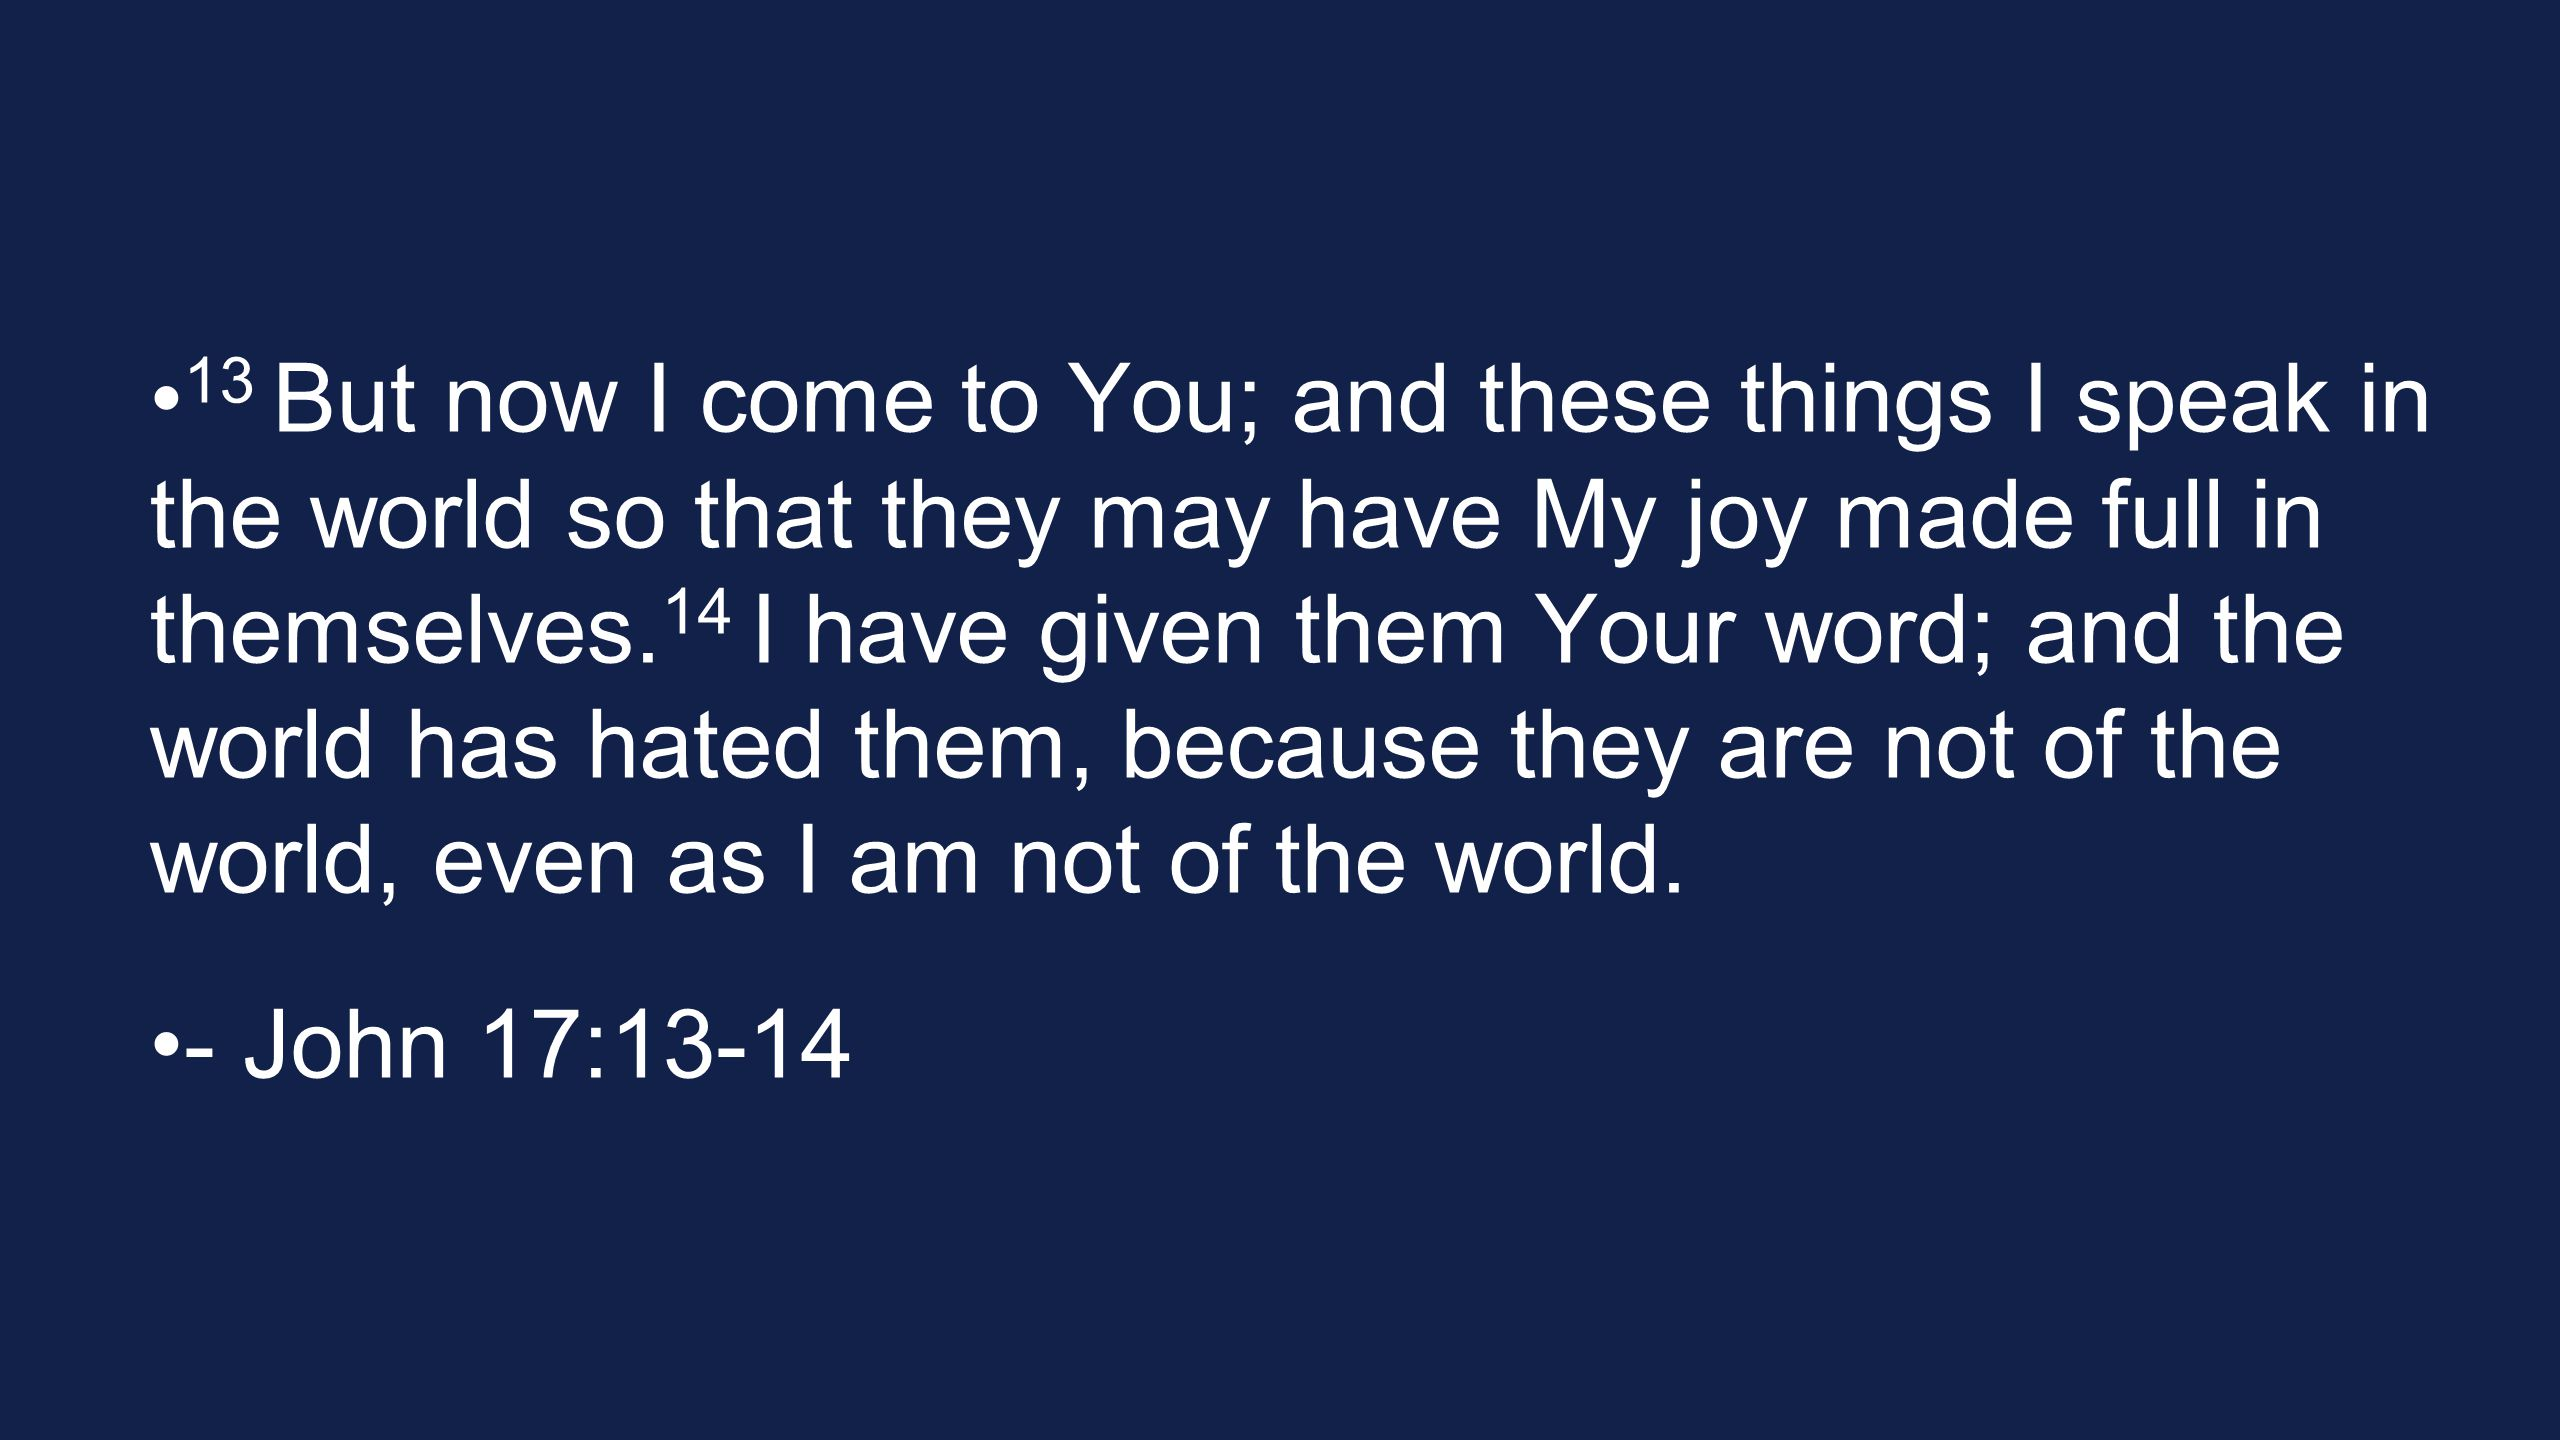 13 But now I come to You; and these things I speak in the world so that they may have My joy made full in themselves. 14 I have given them Your word;